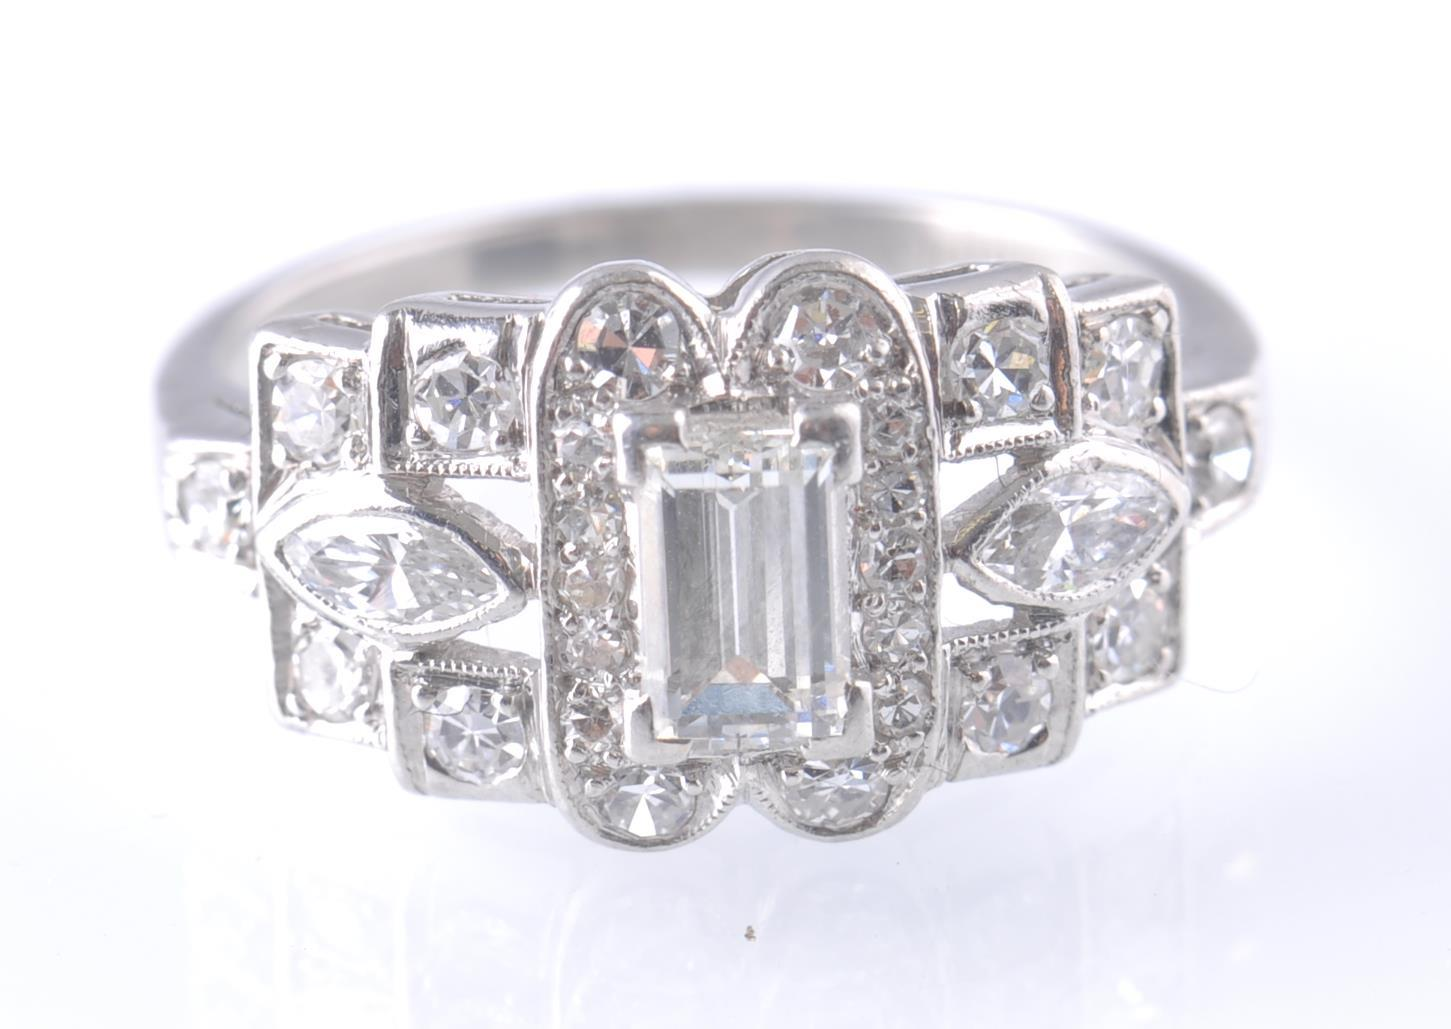 ART DECO PLATINUM AND DIAMOND RING EMERALD AND MAR - Image 3 of 5